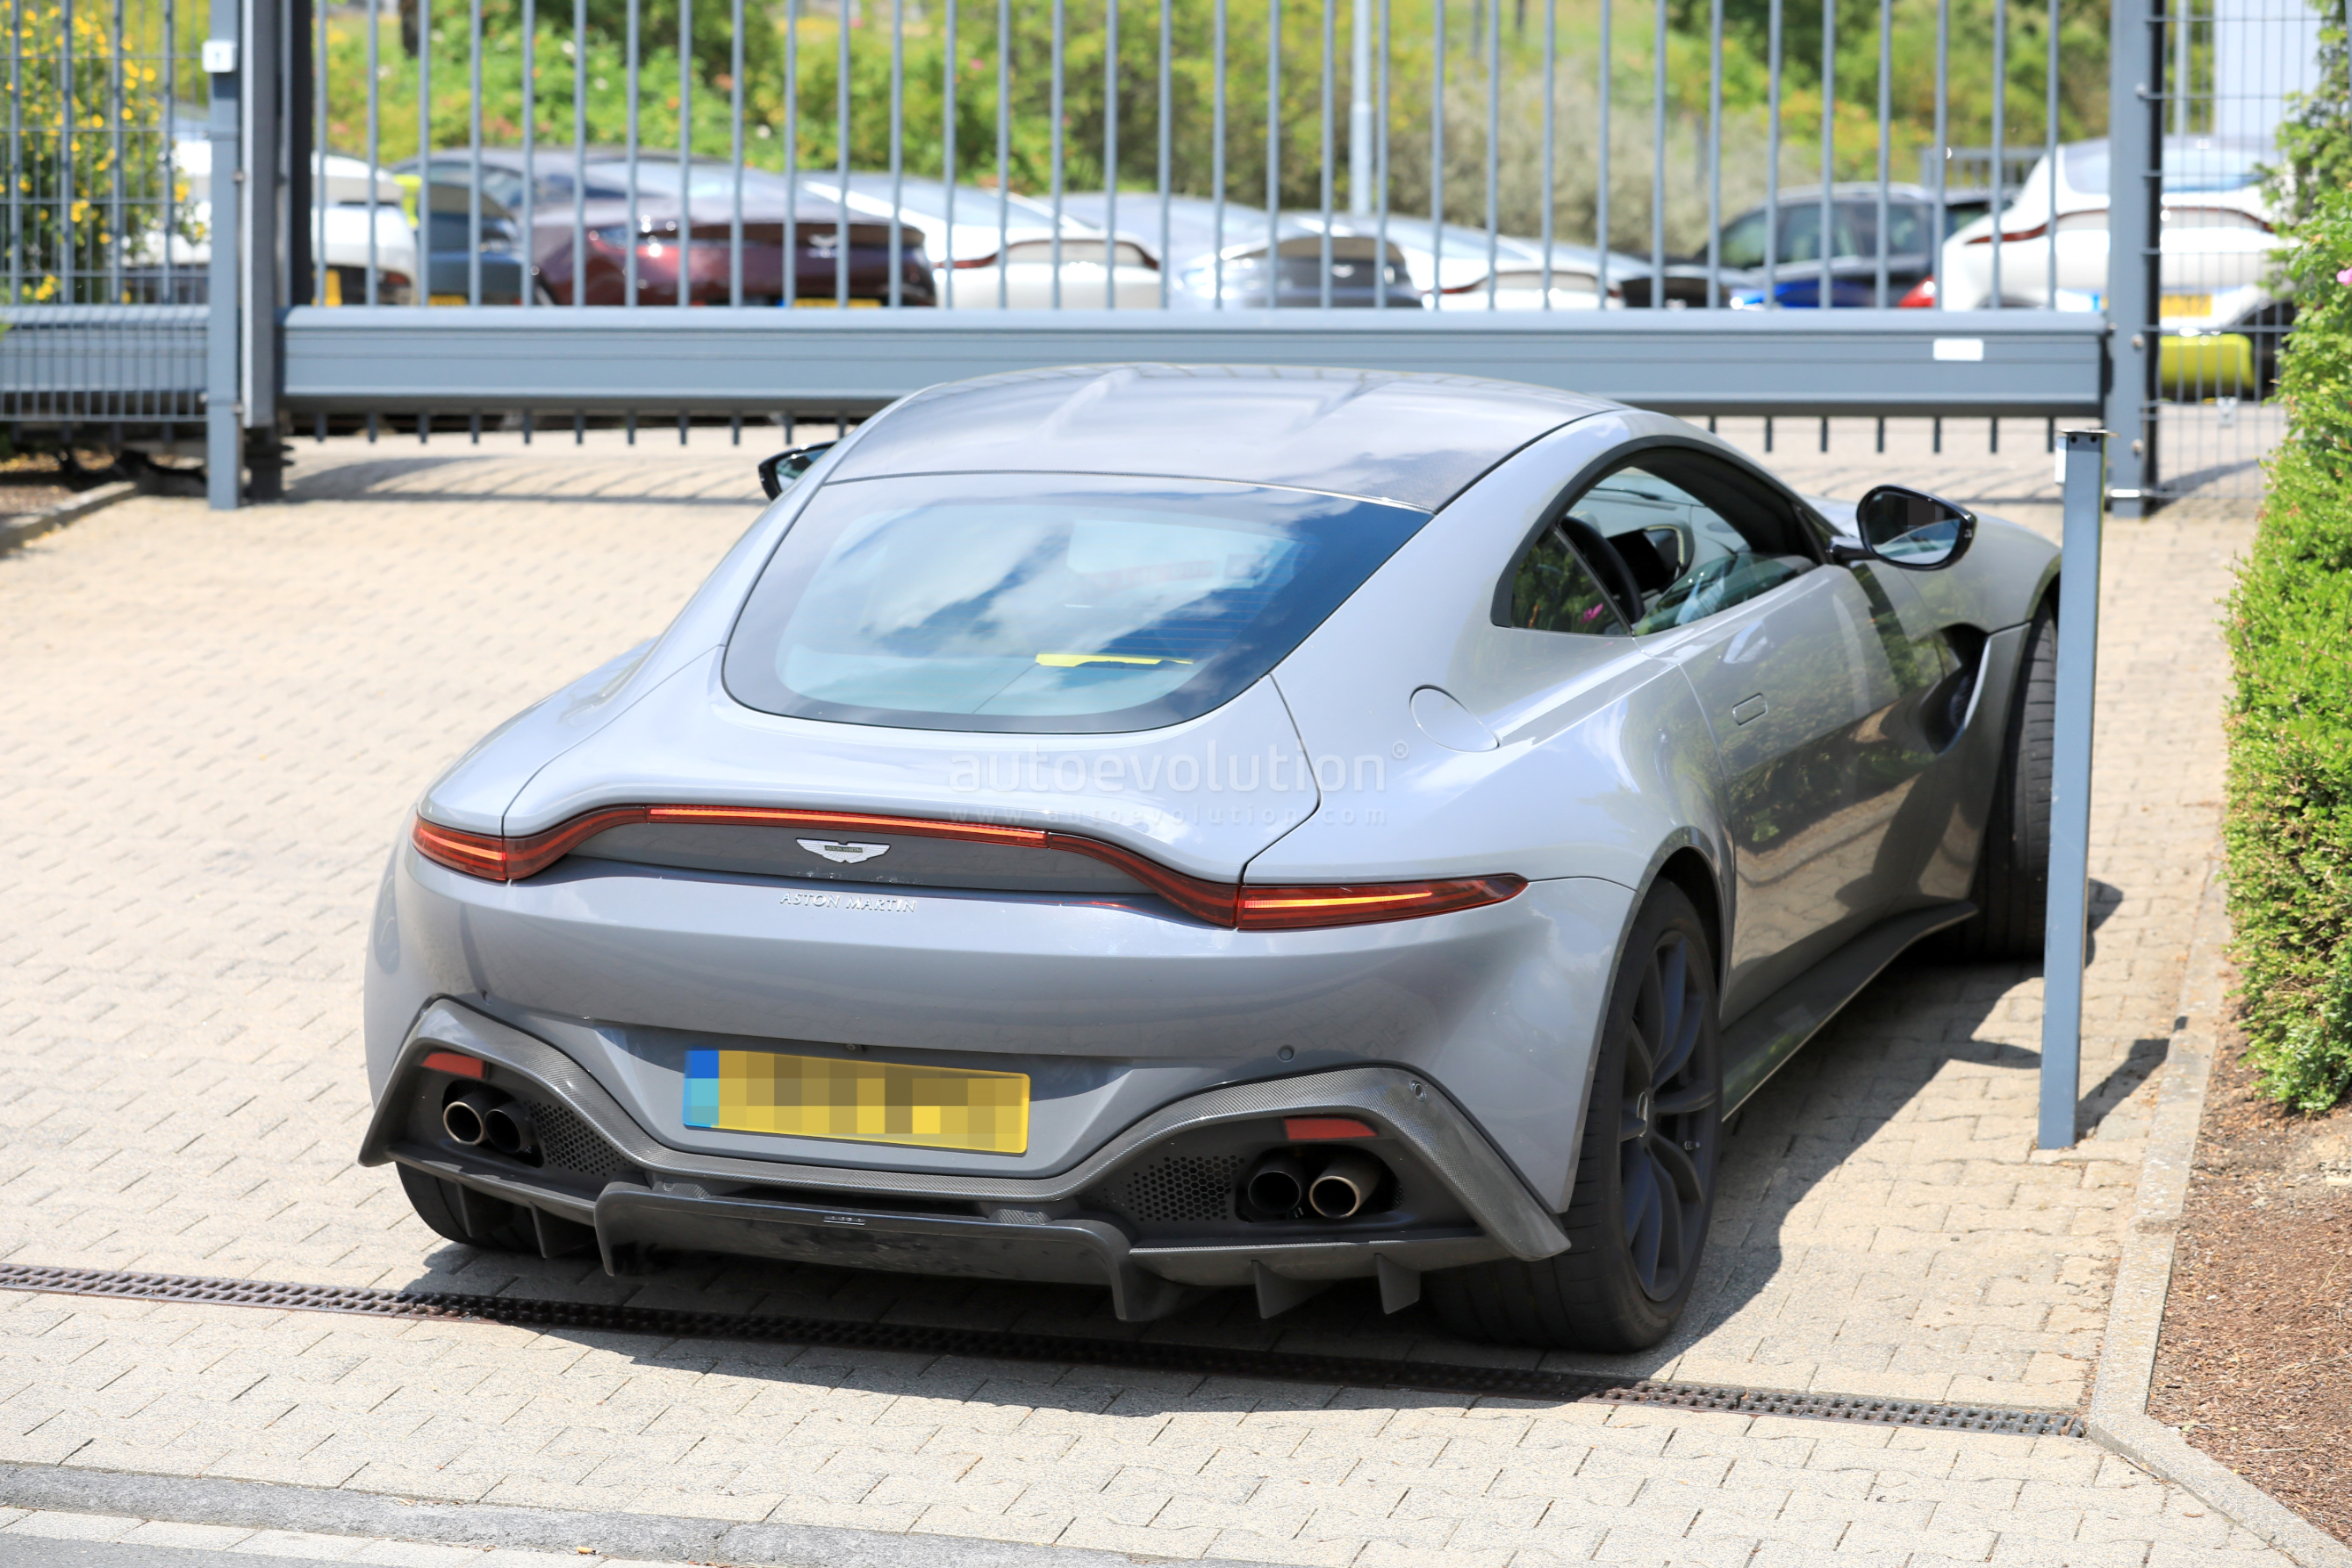 Aston Martin Vantage S Test Mule Spied Near The Nurburgring